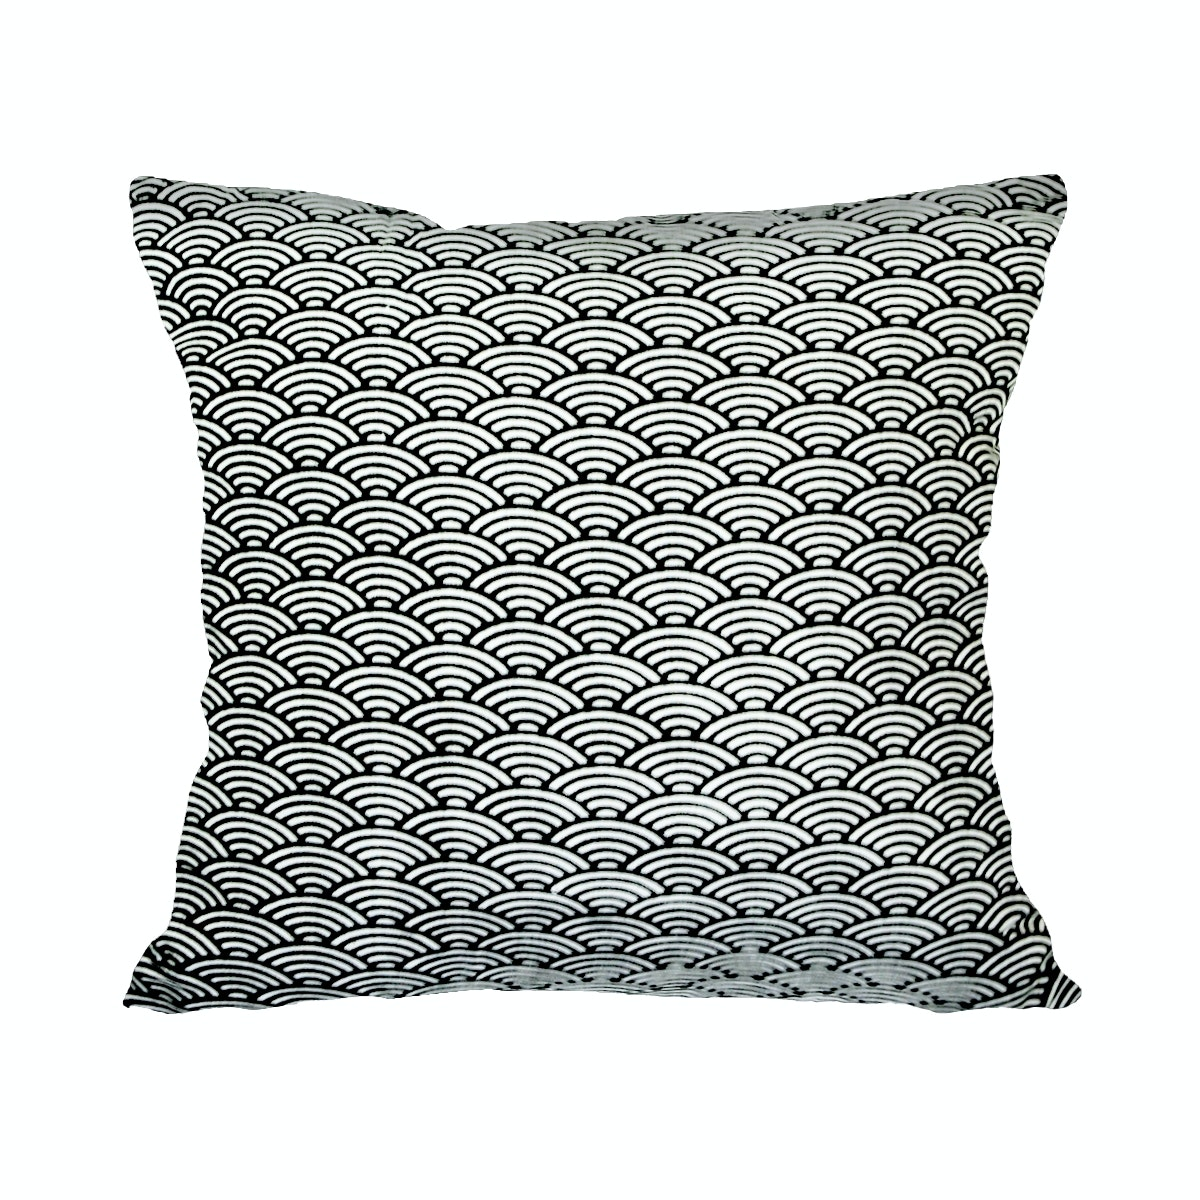 Stiletto Living Cushion Cover / Sarung Bantal Monokrom - Bw Fish Scale